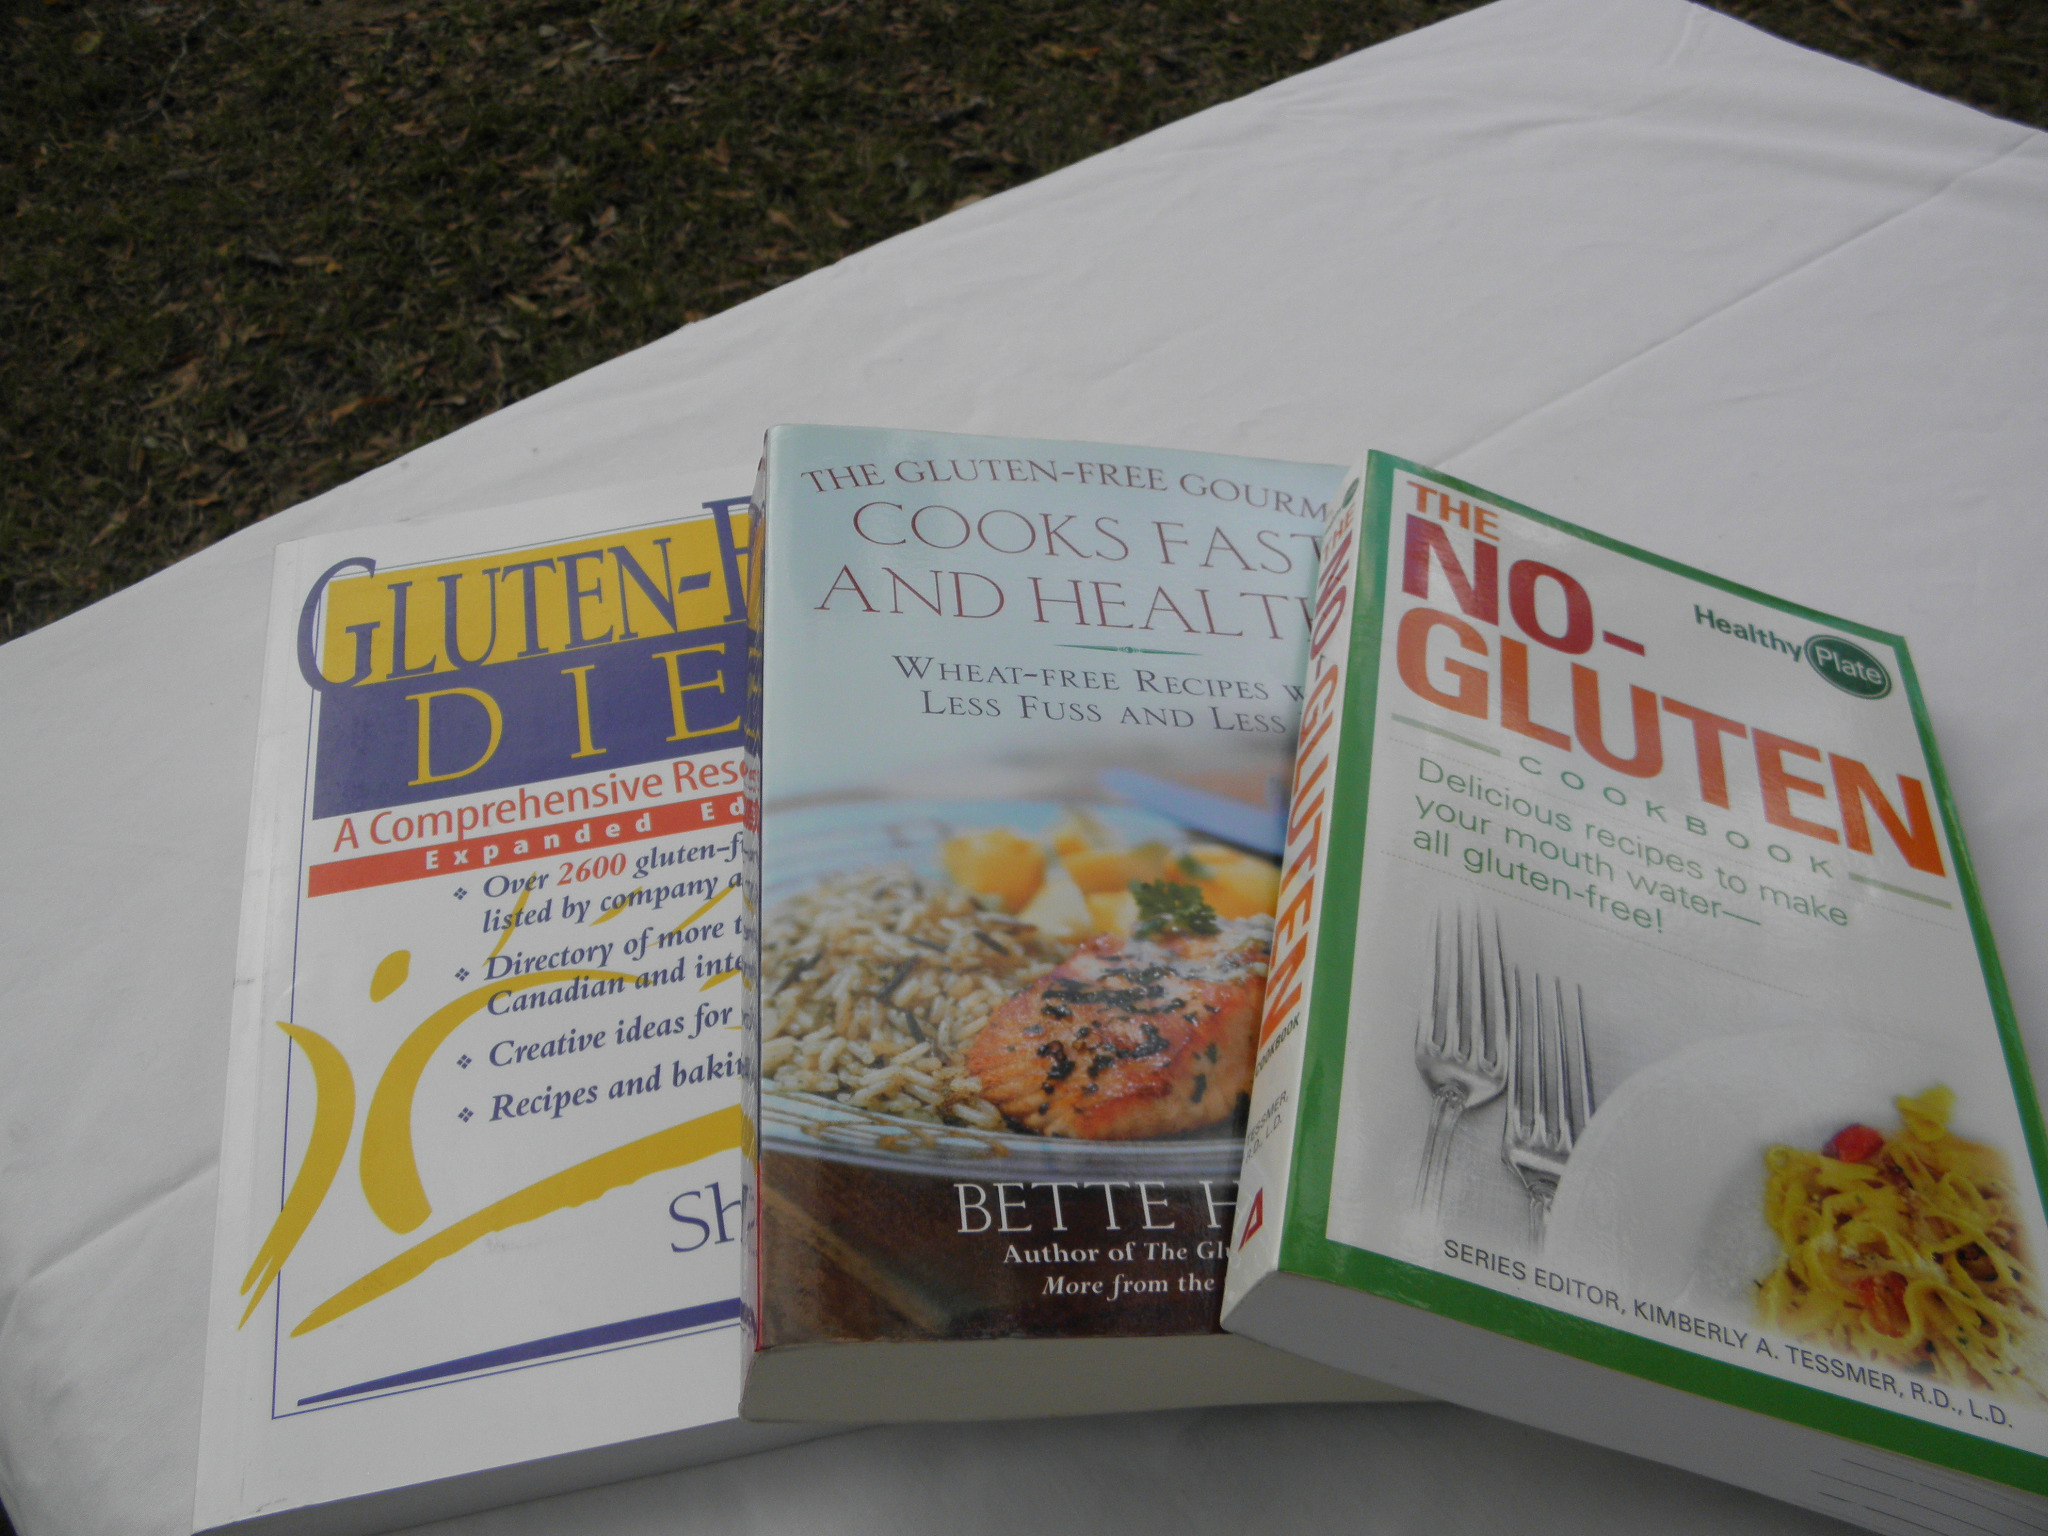 10 For 10 Auction: Lot of 3 Gluten Free Cookbooks